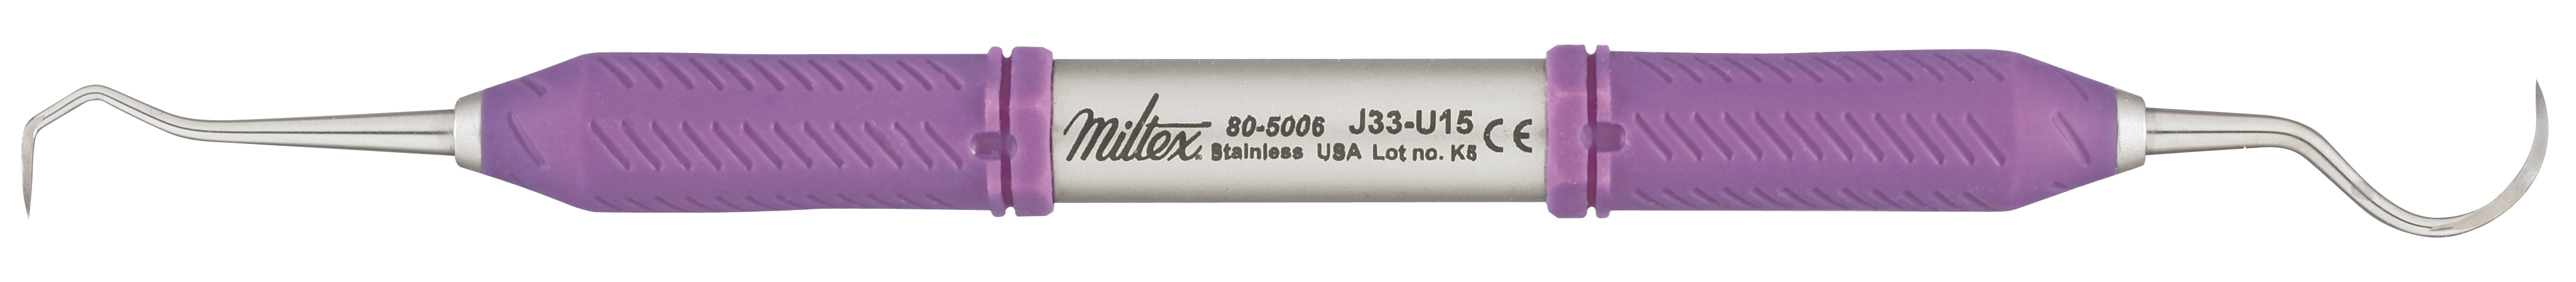 jacquette-33-u15-scaler-griplite-s6-80-5006-miltex.jpg